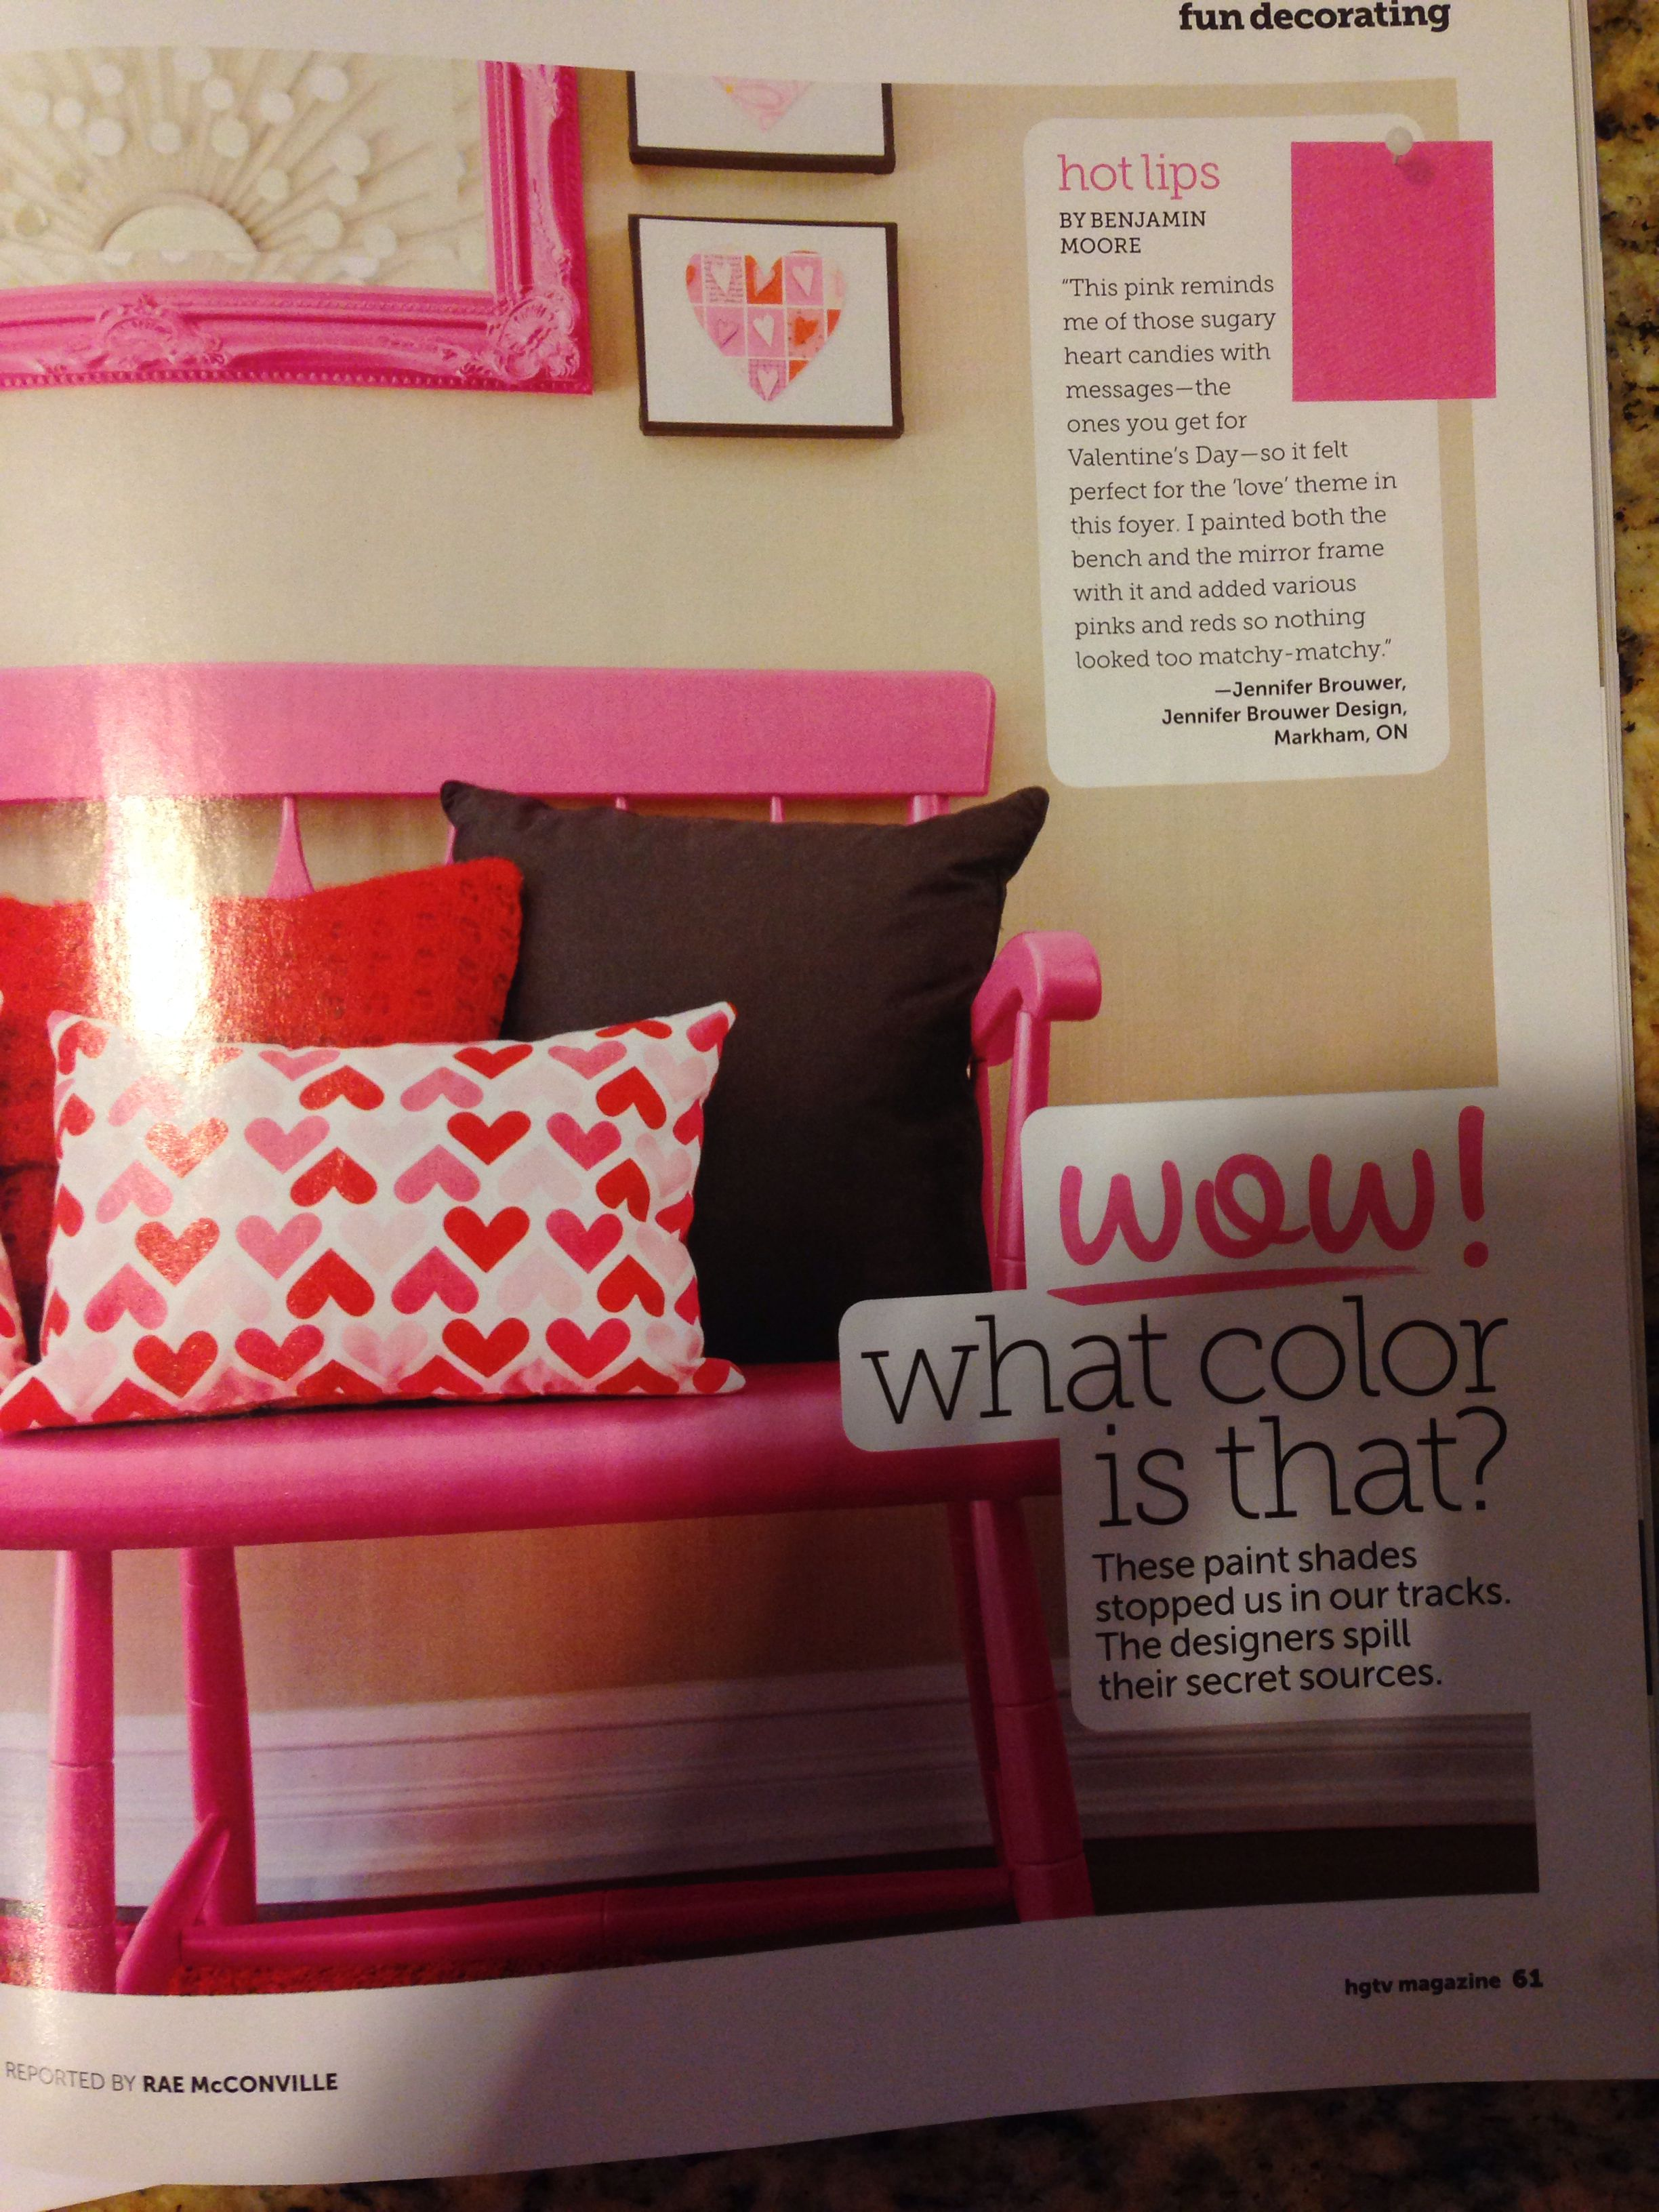 Hot Lips Benjamin Moore